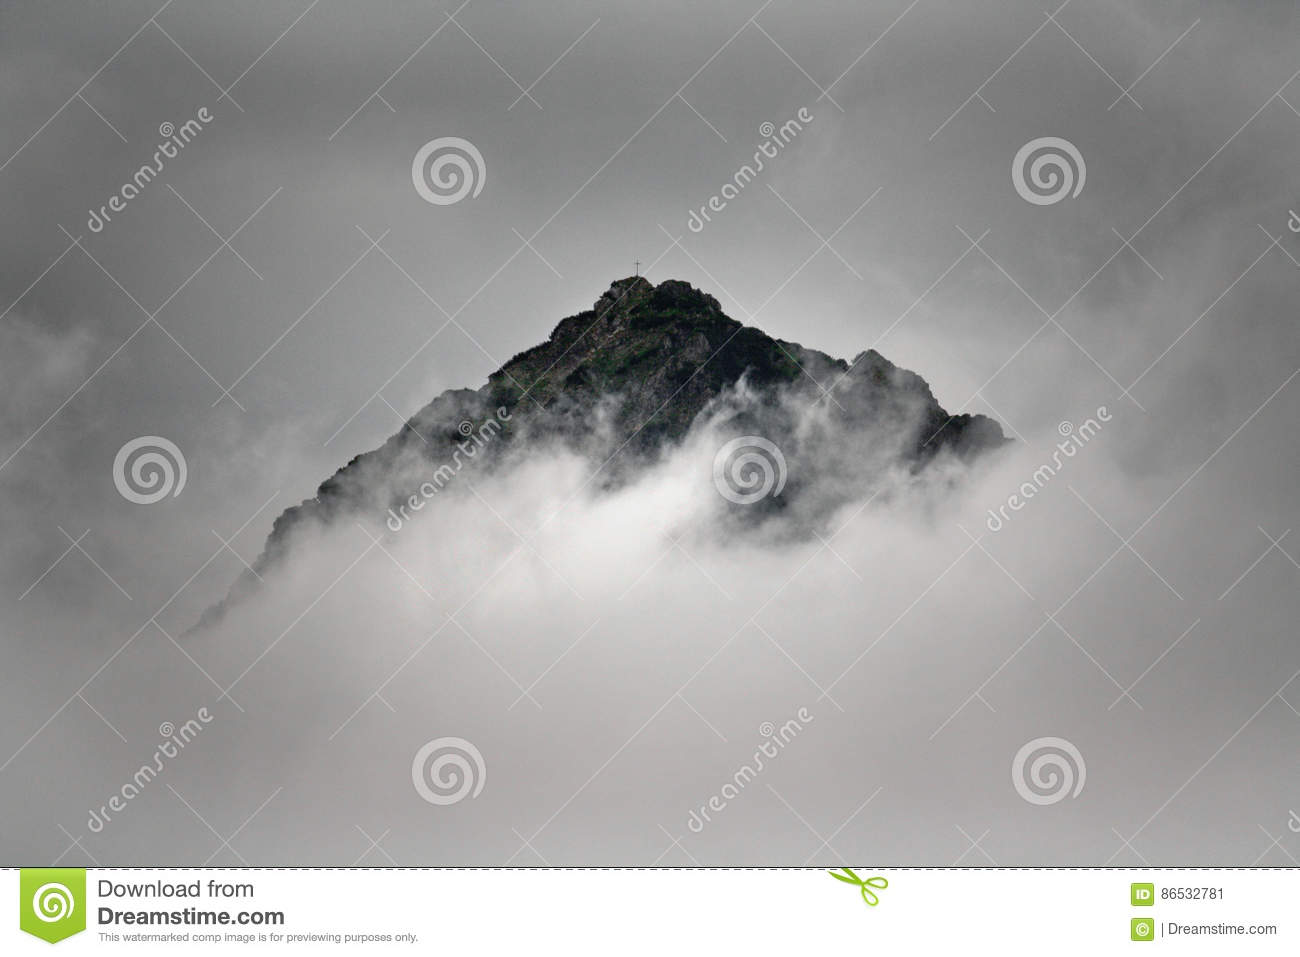 Summit of a mountain in the clouds